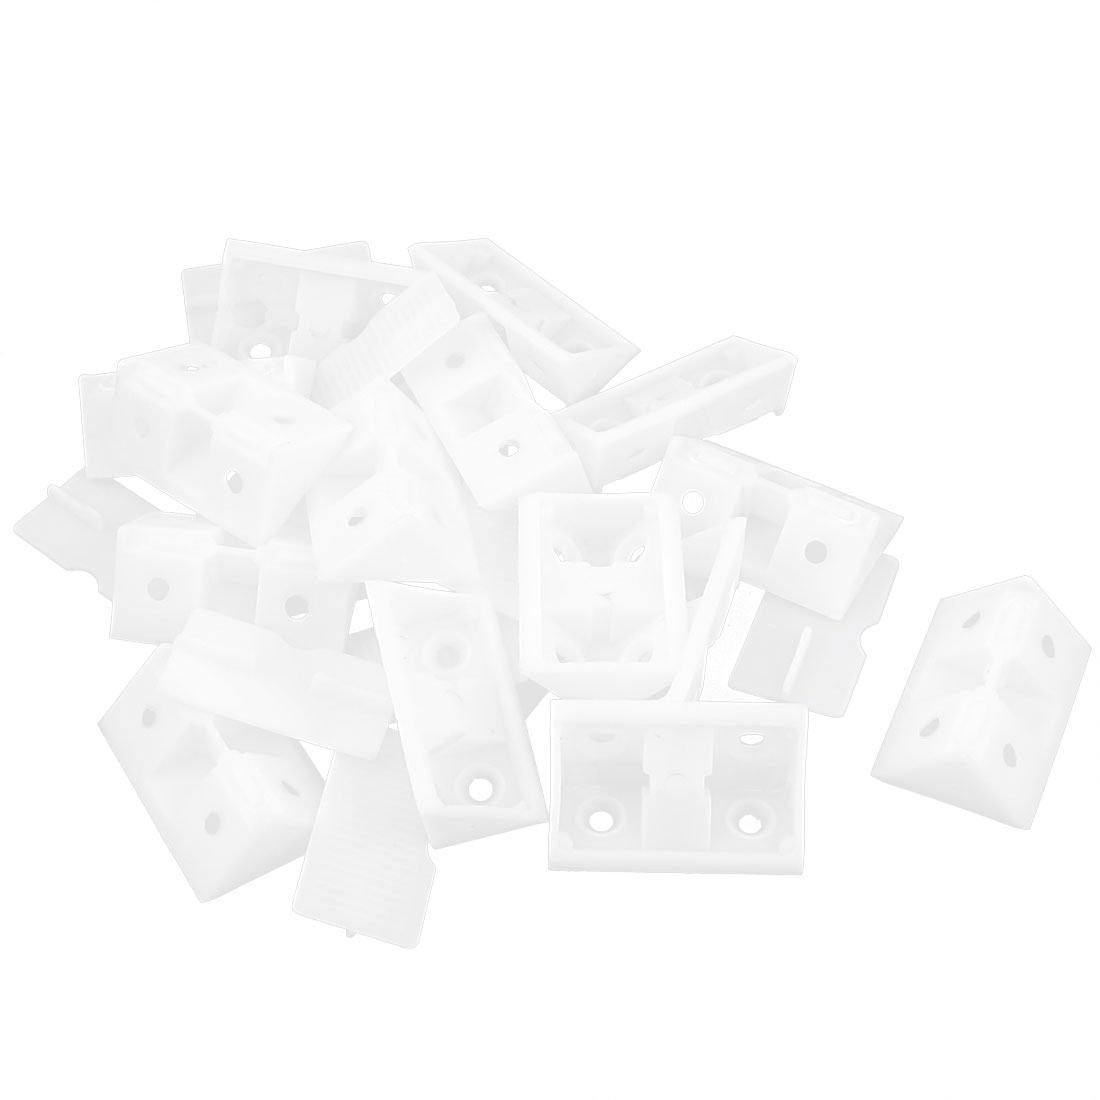 15pcs White Plastic Closet Cabinet 4 Holes Shelf Corner Brace Joint Brackets Support